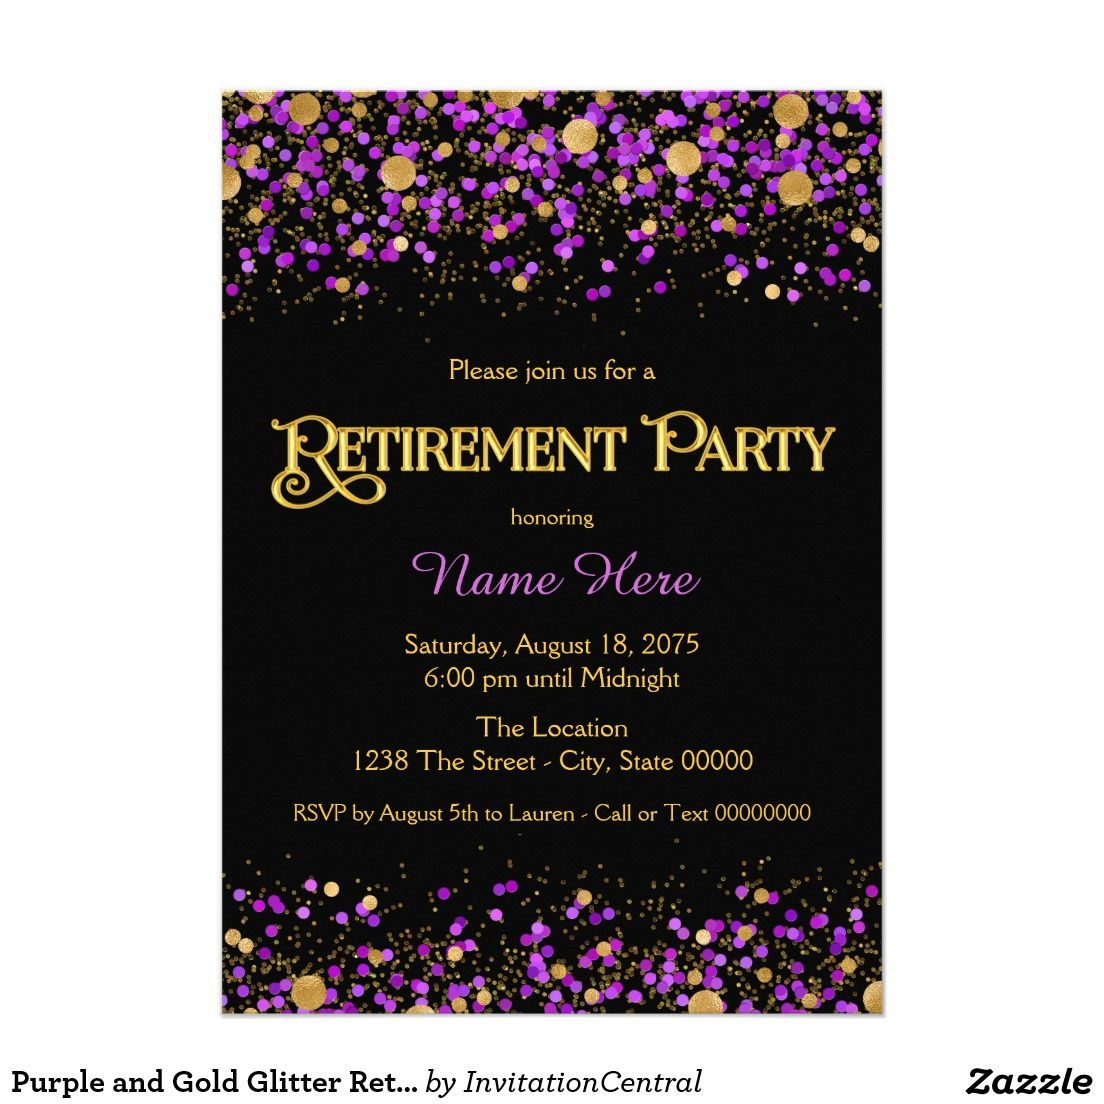 Purple and Gold Glitter Retirement Party Card | Retirement Party ...